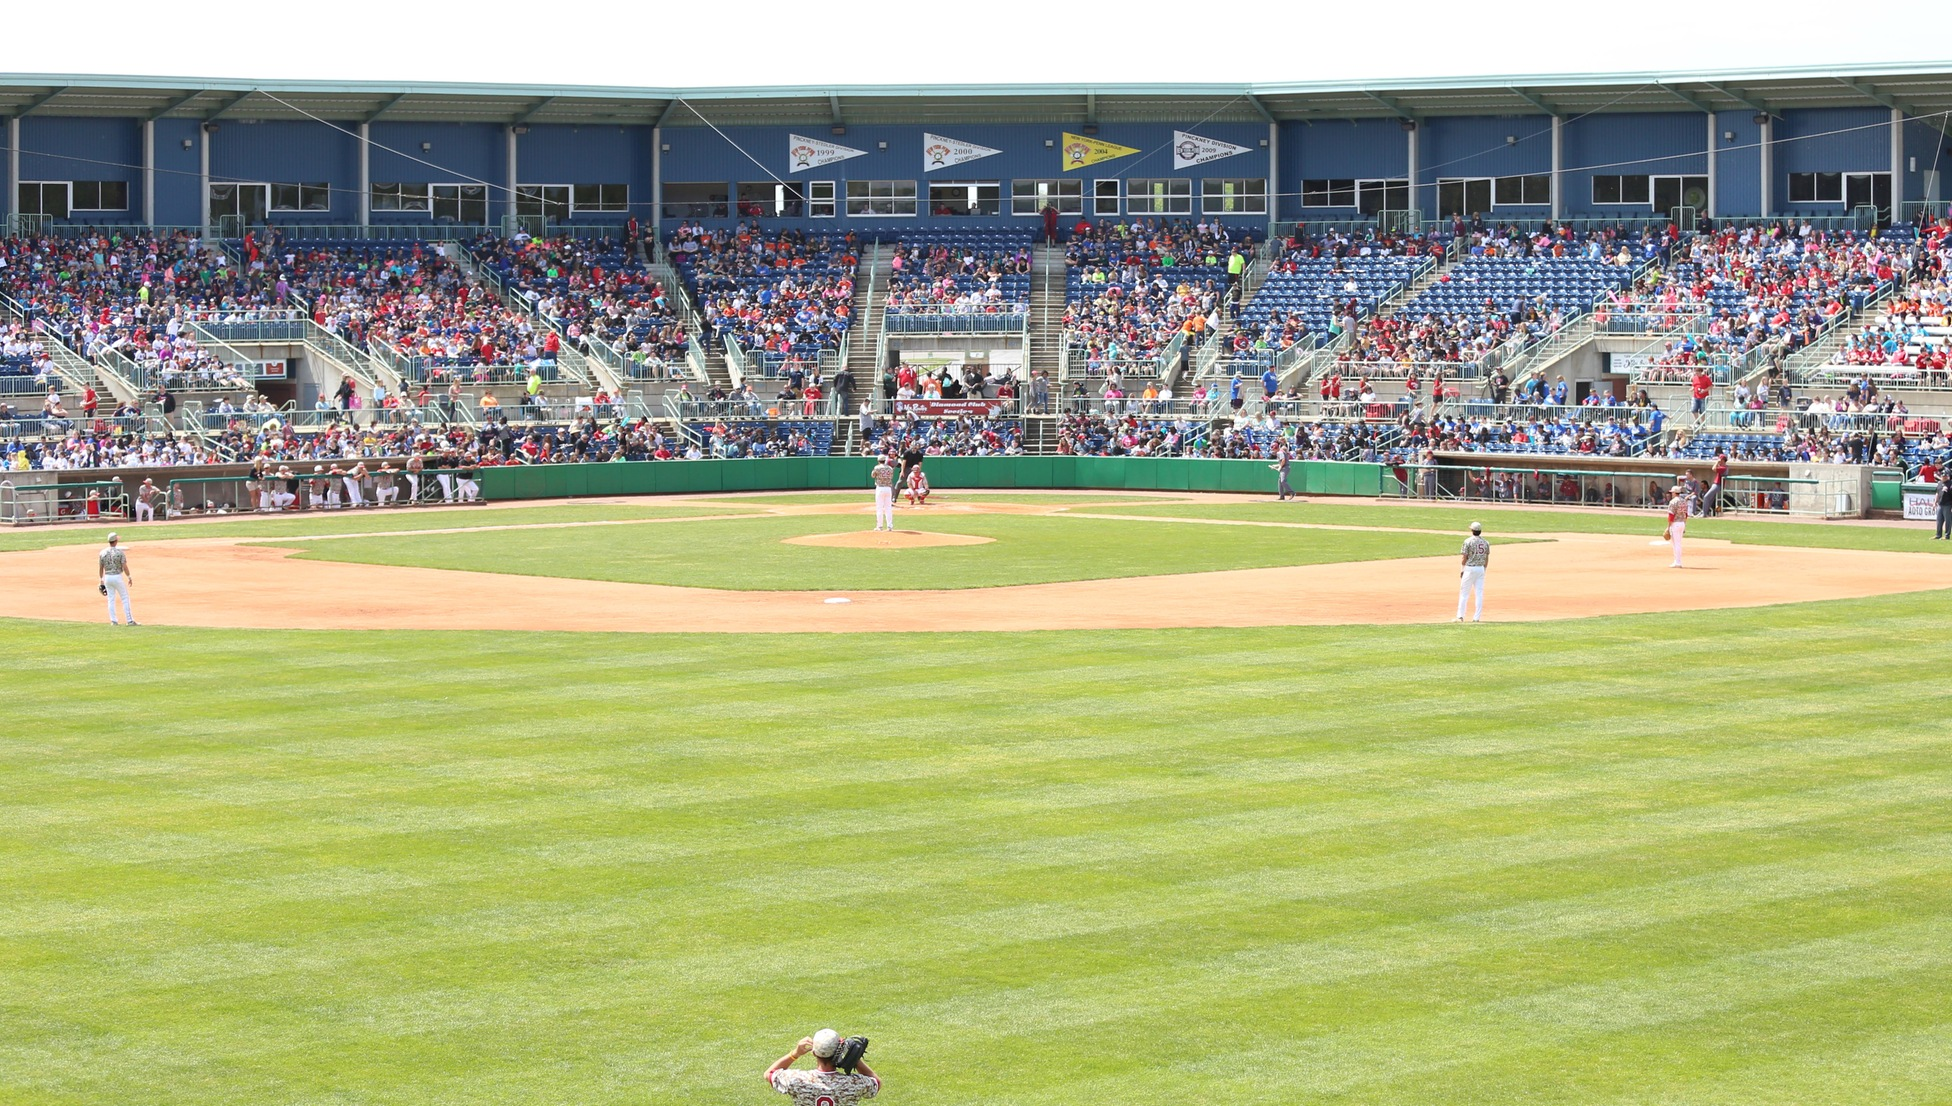 YSU will host Ohio State at Eastwood Field on May 14